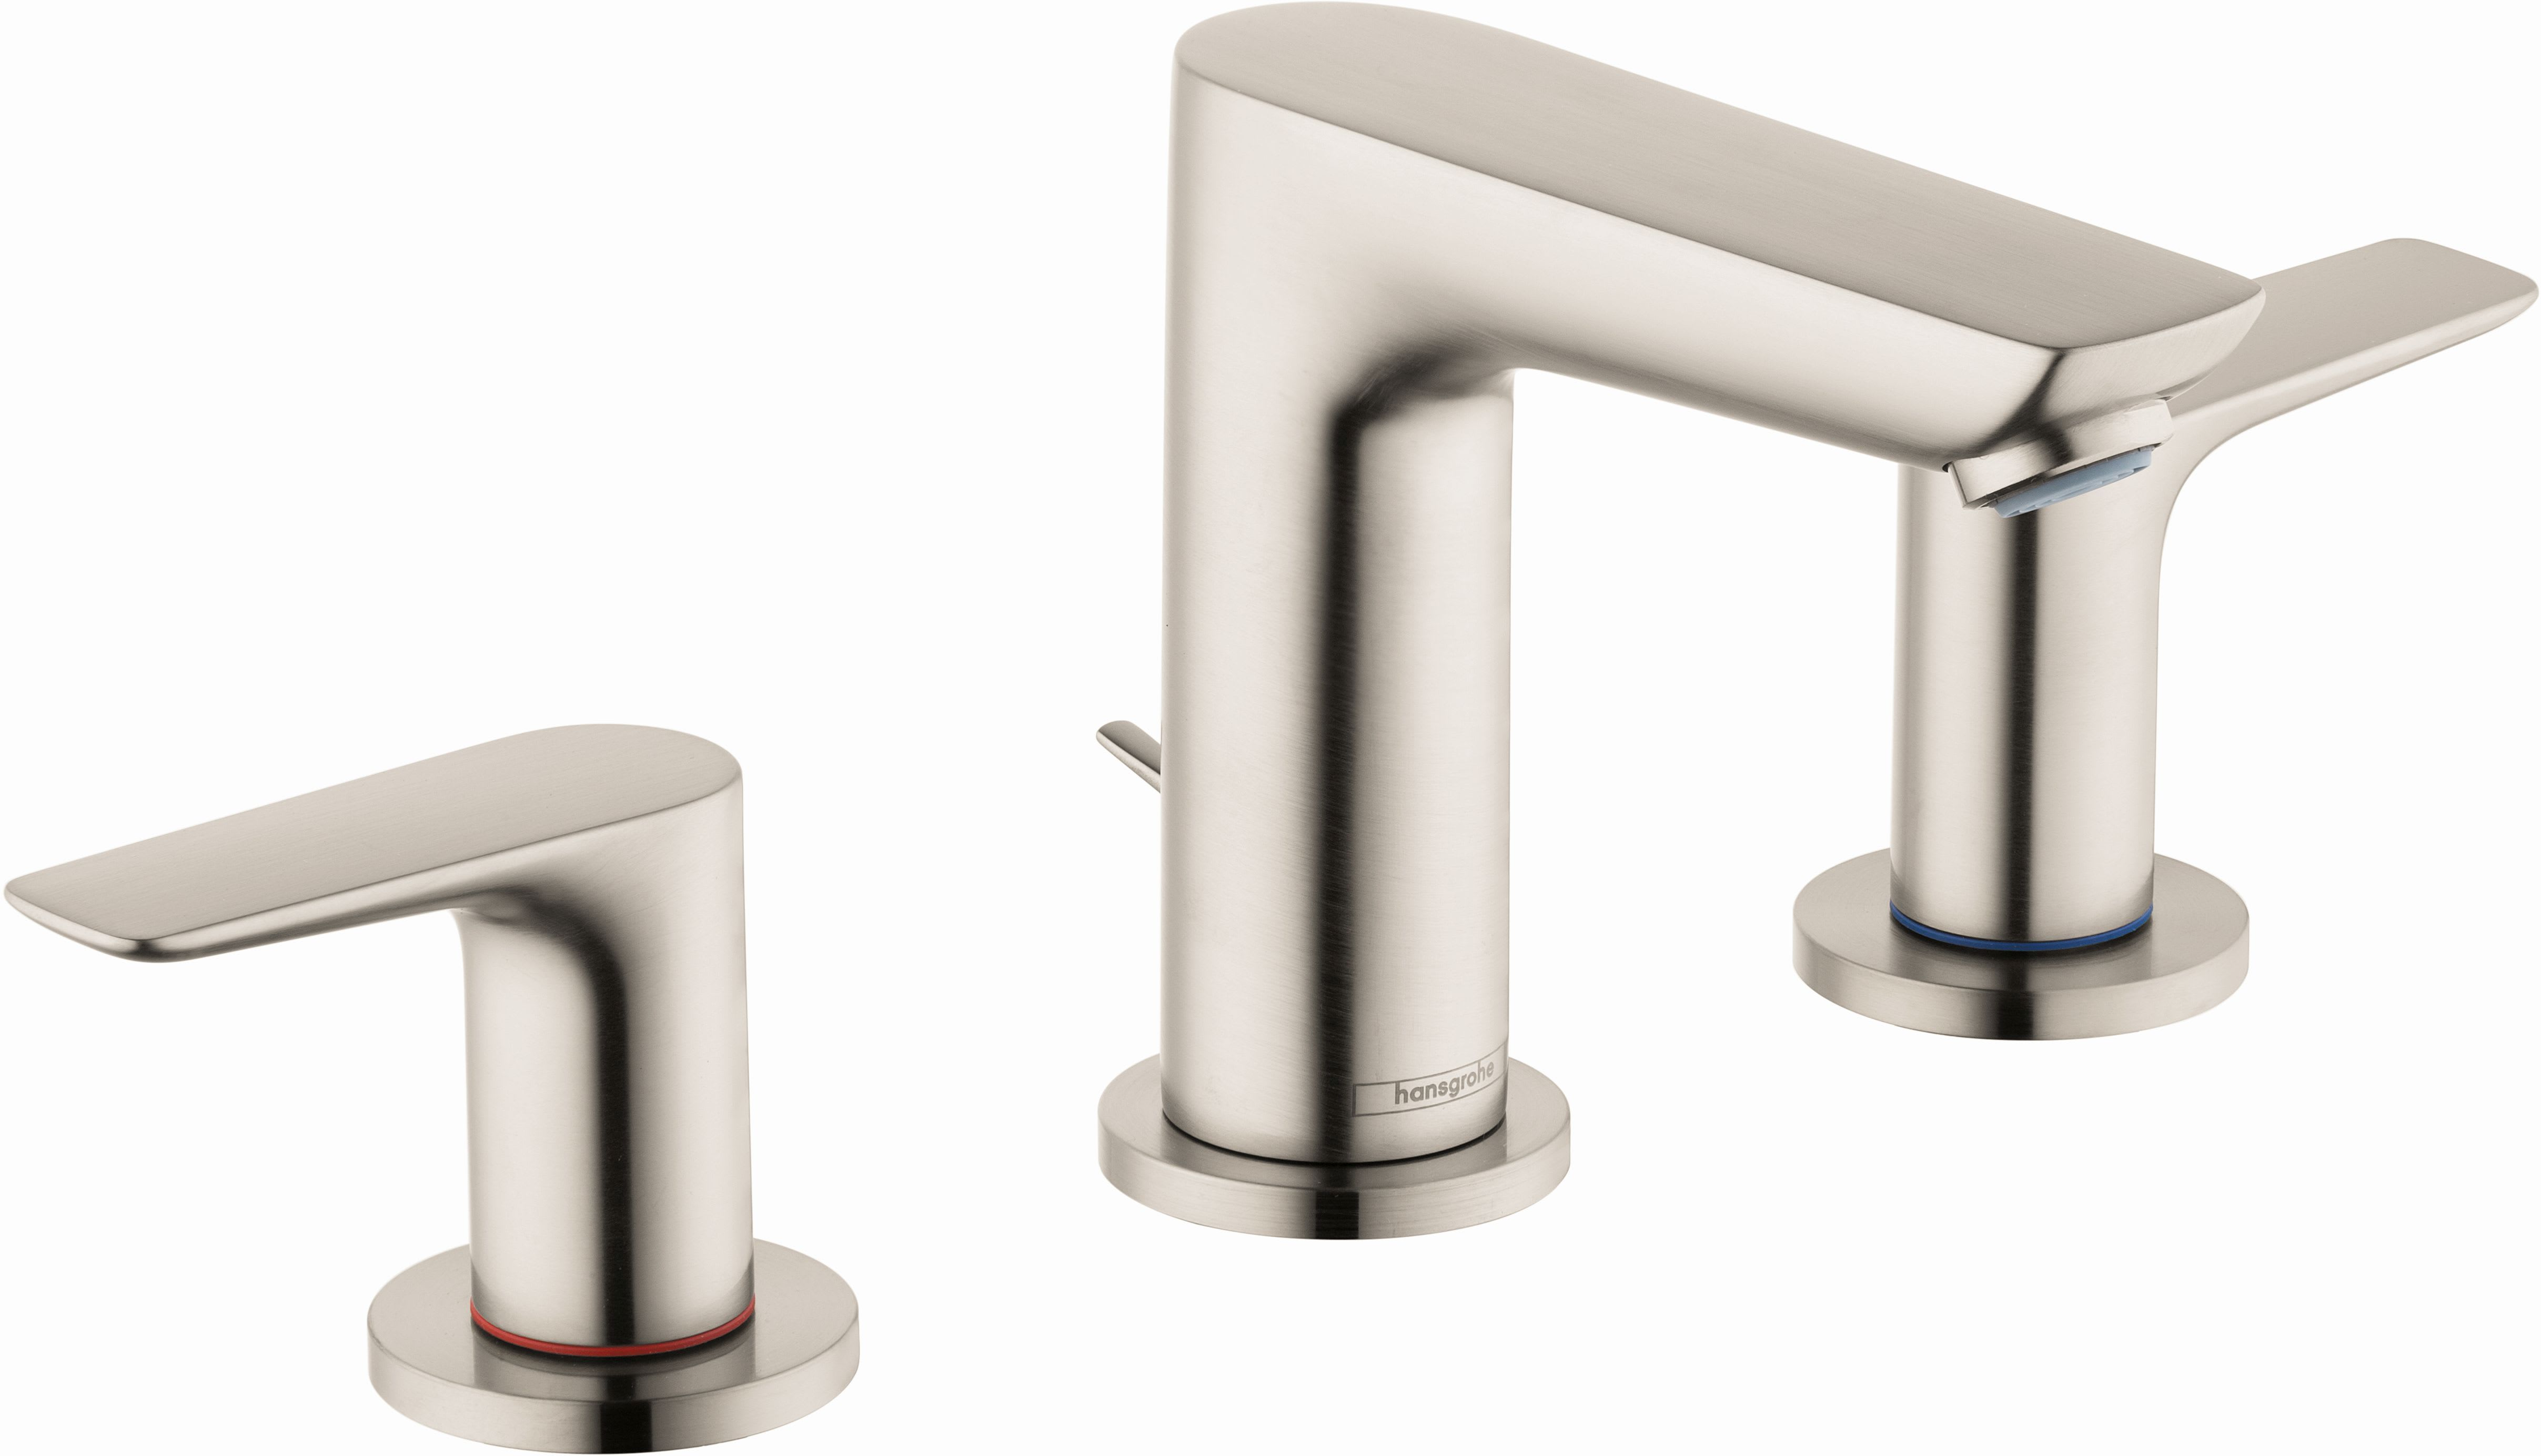 Favorit Hansgrohe 71733 - Build.com YY14